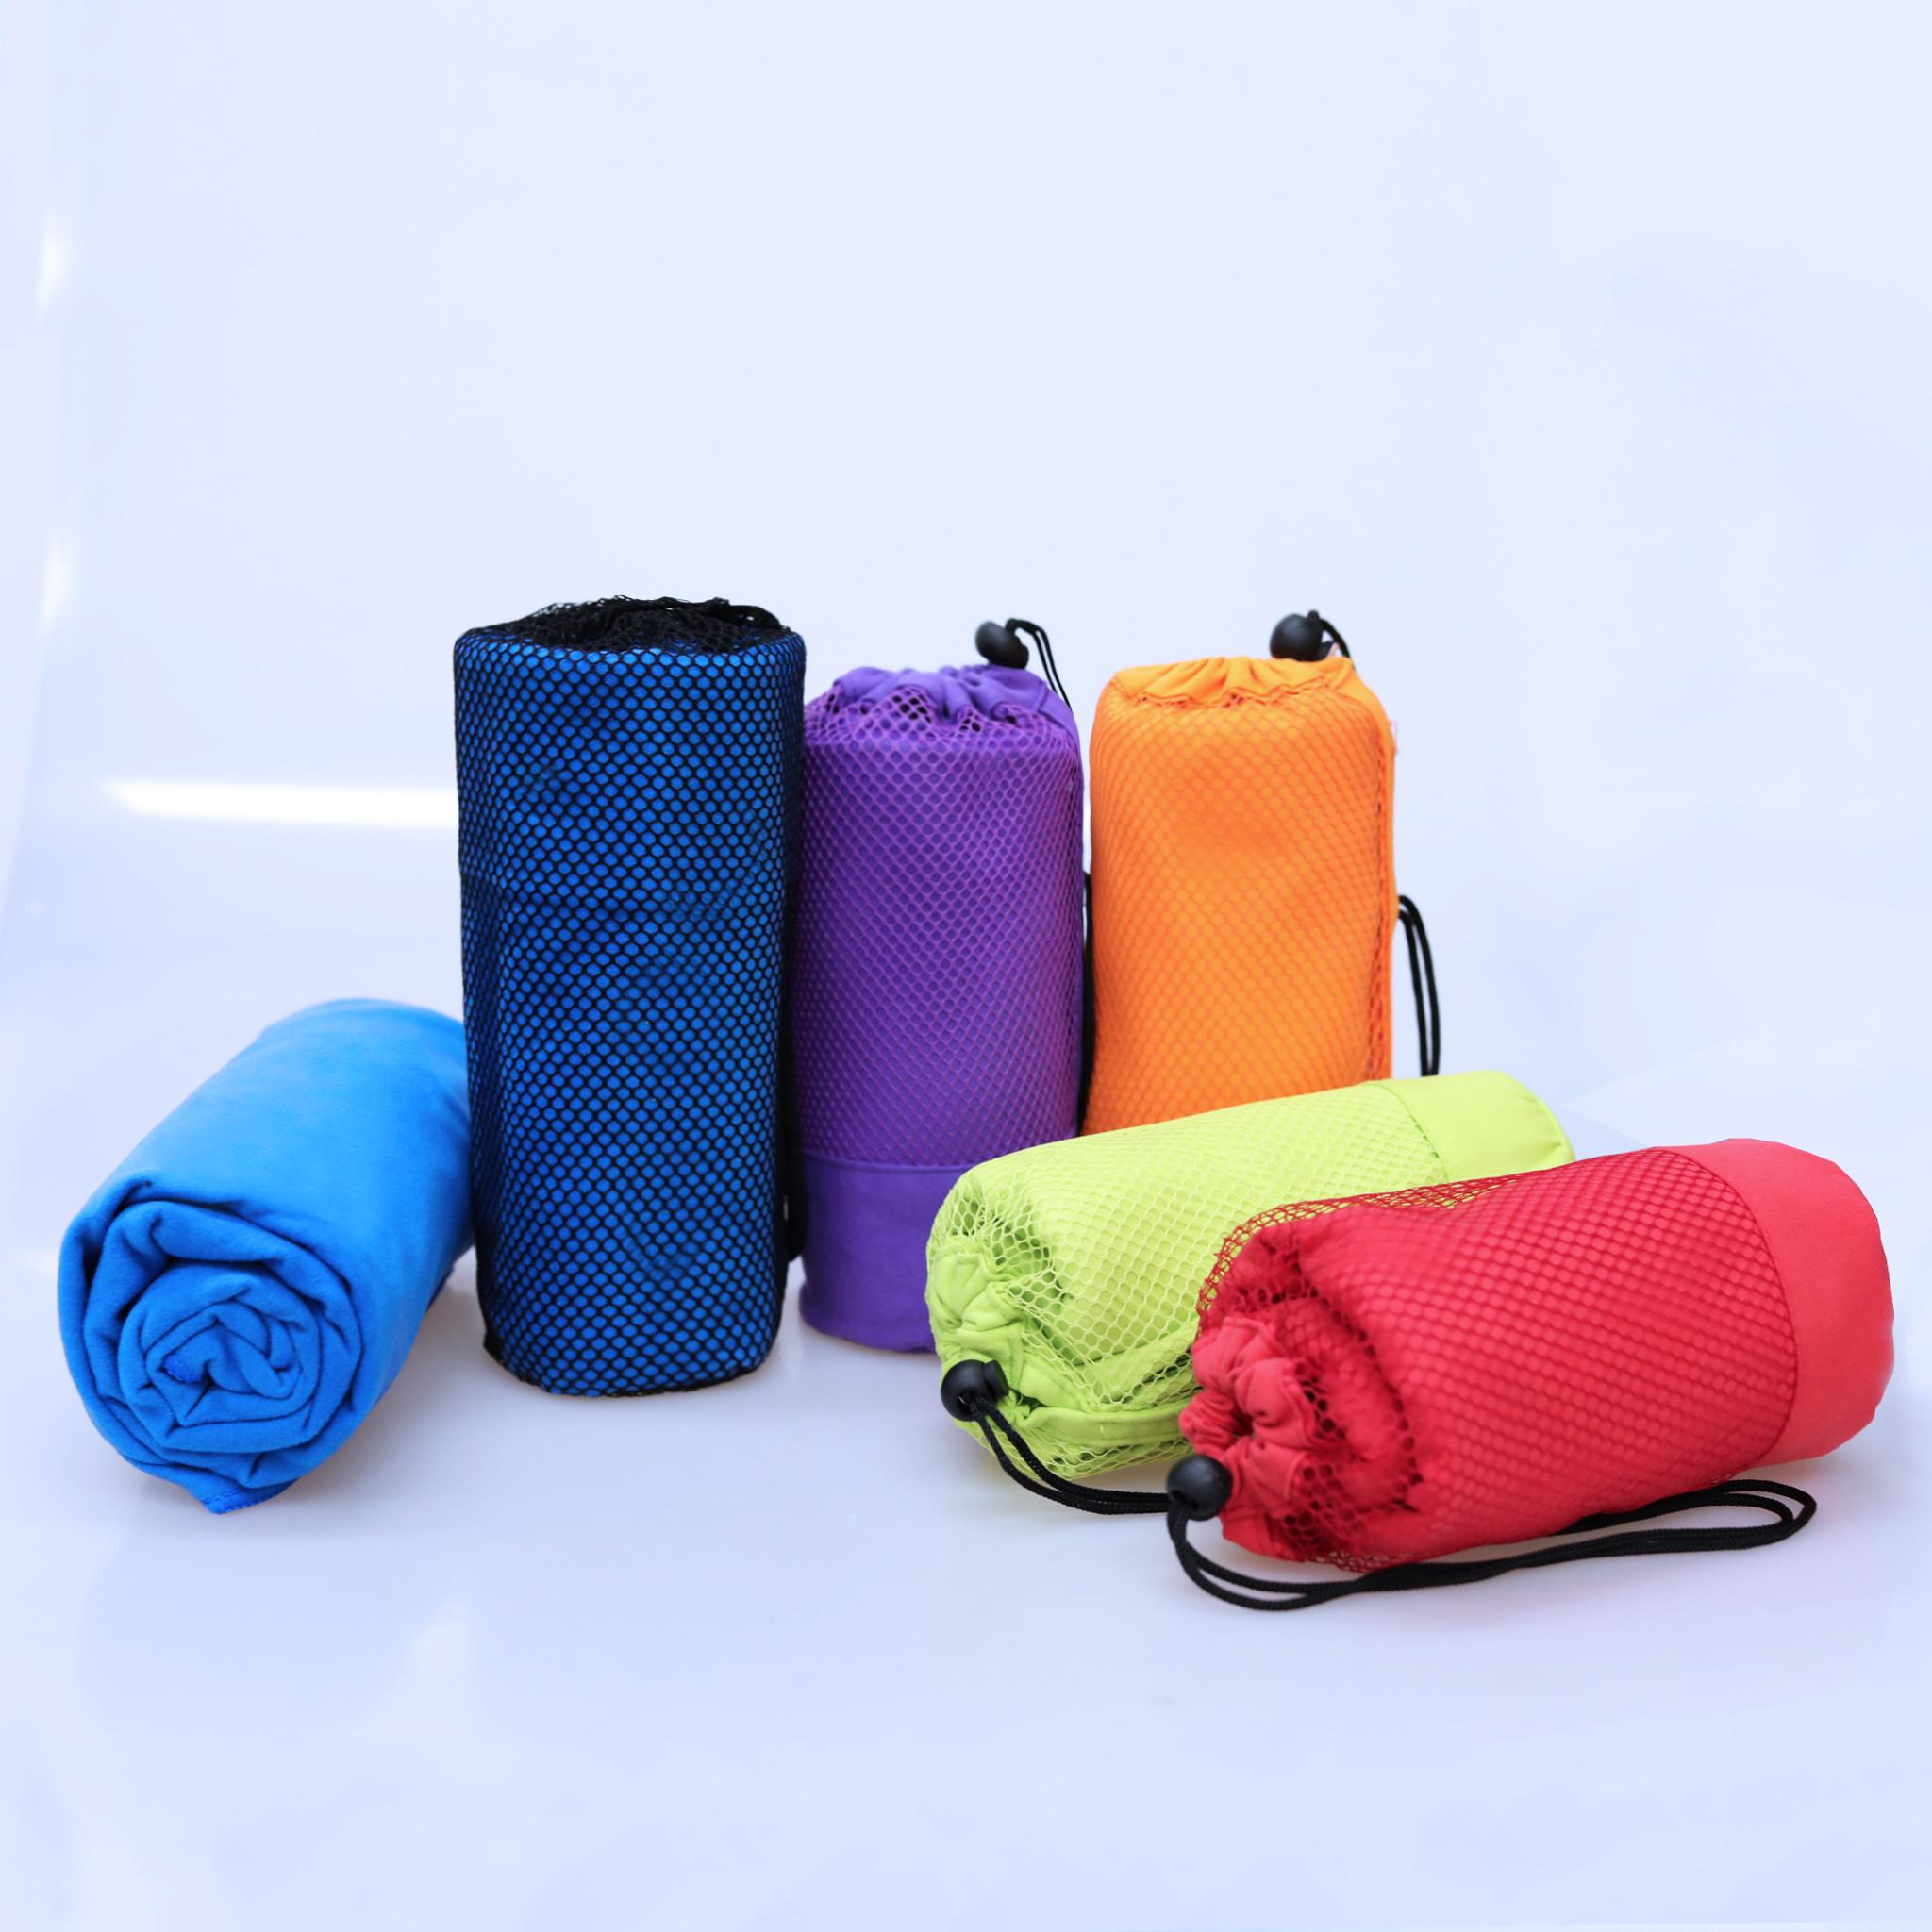 eco products mat towels collective mats luxe yoga angled bodhi bhakti